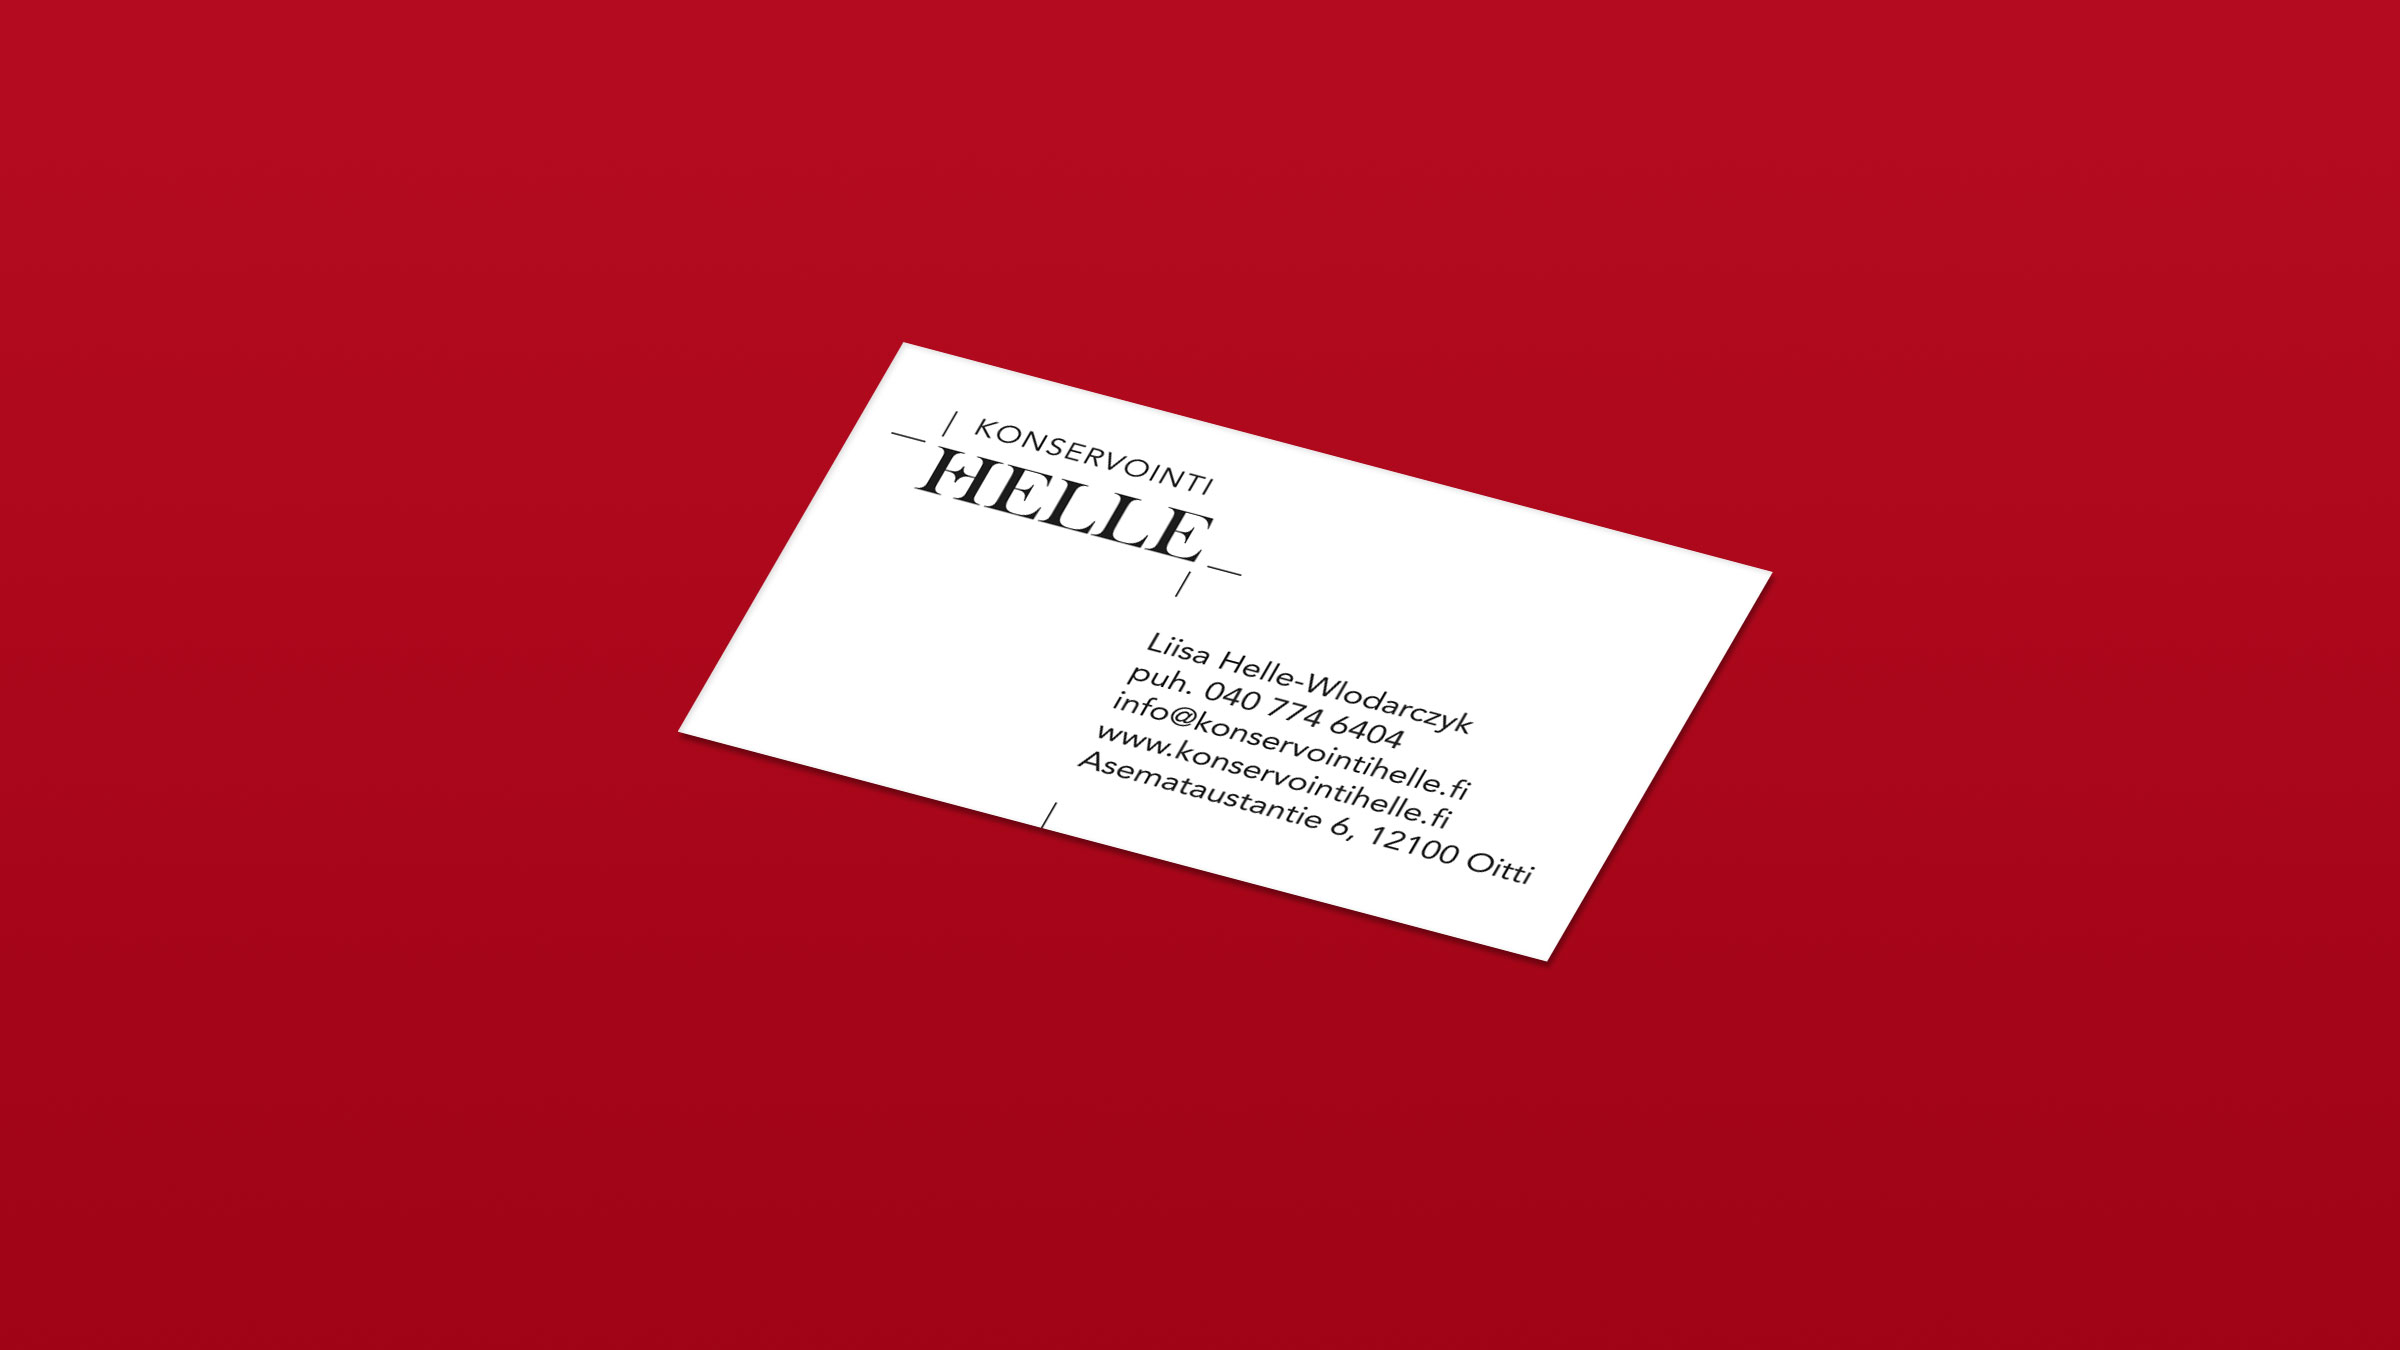 helle-businescard_16x9